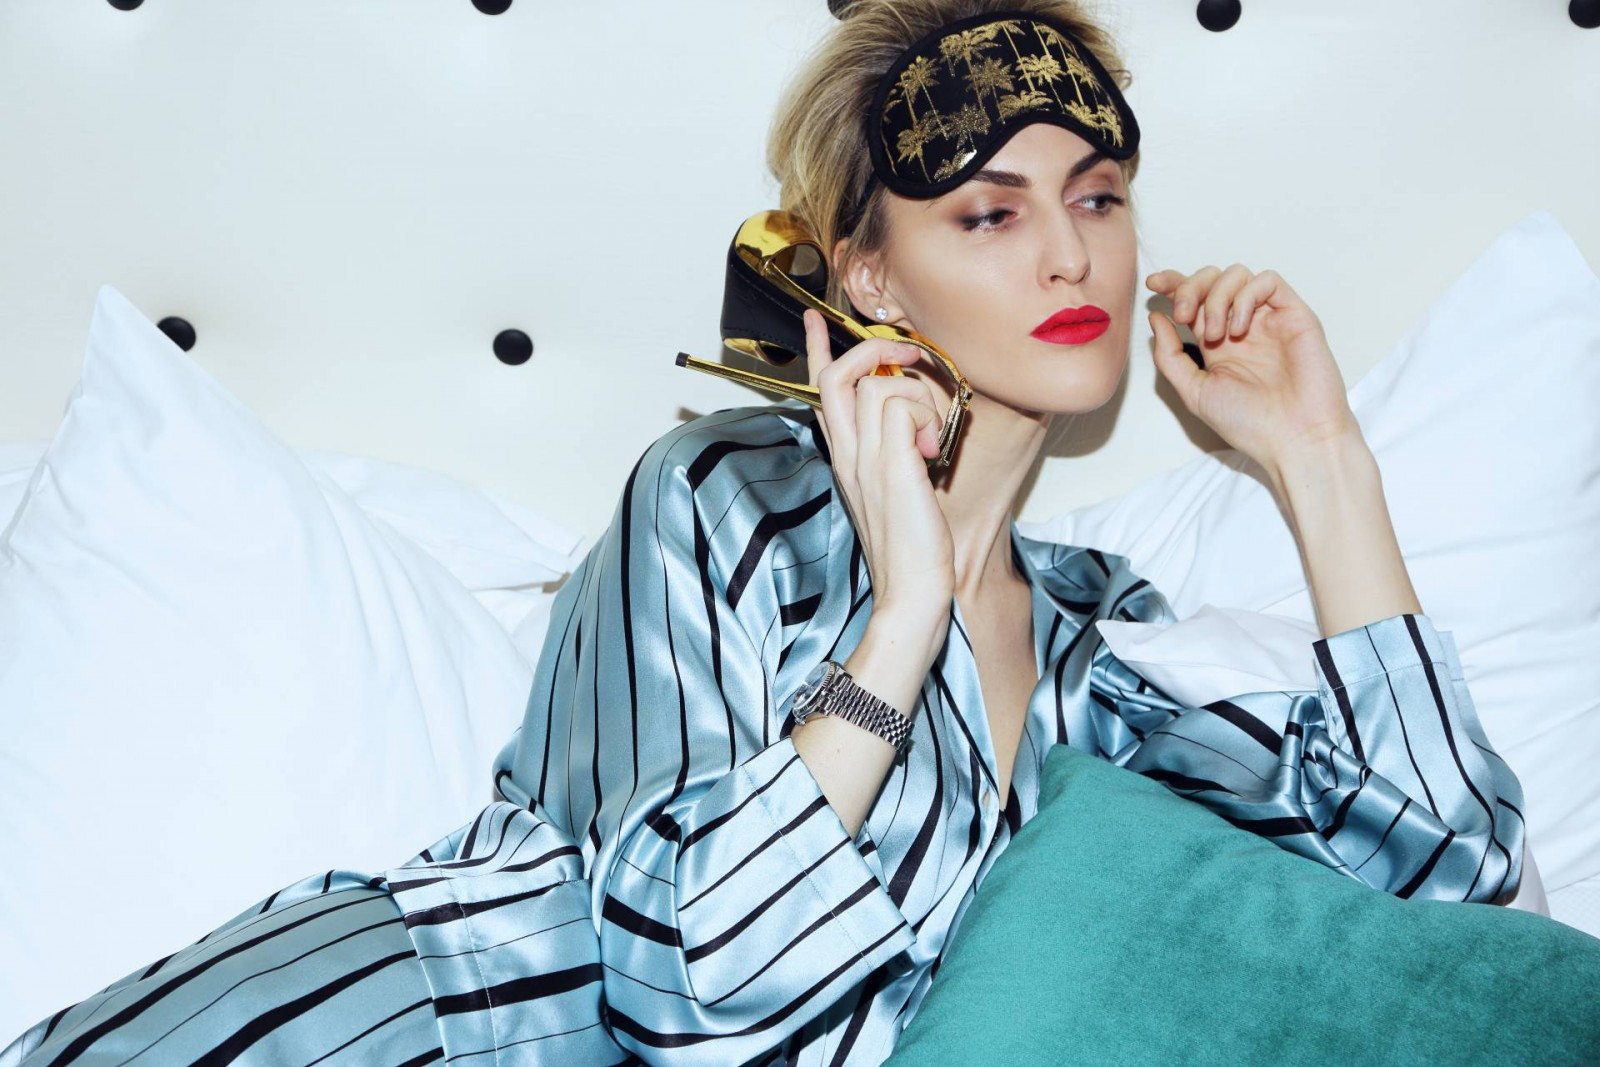 PAJAMA PARTY / MARBLE AVENUES BY LIGA ZEMTURE